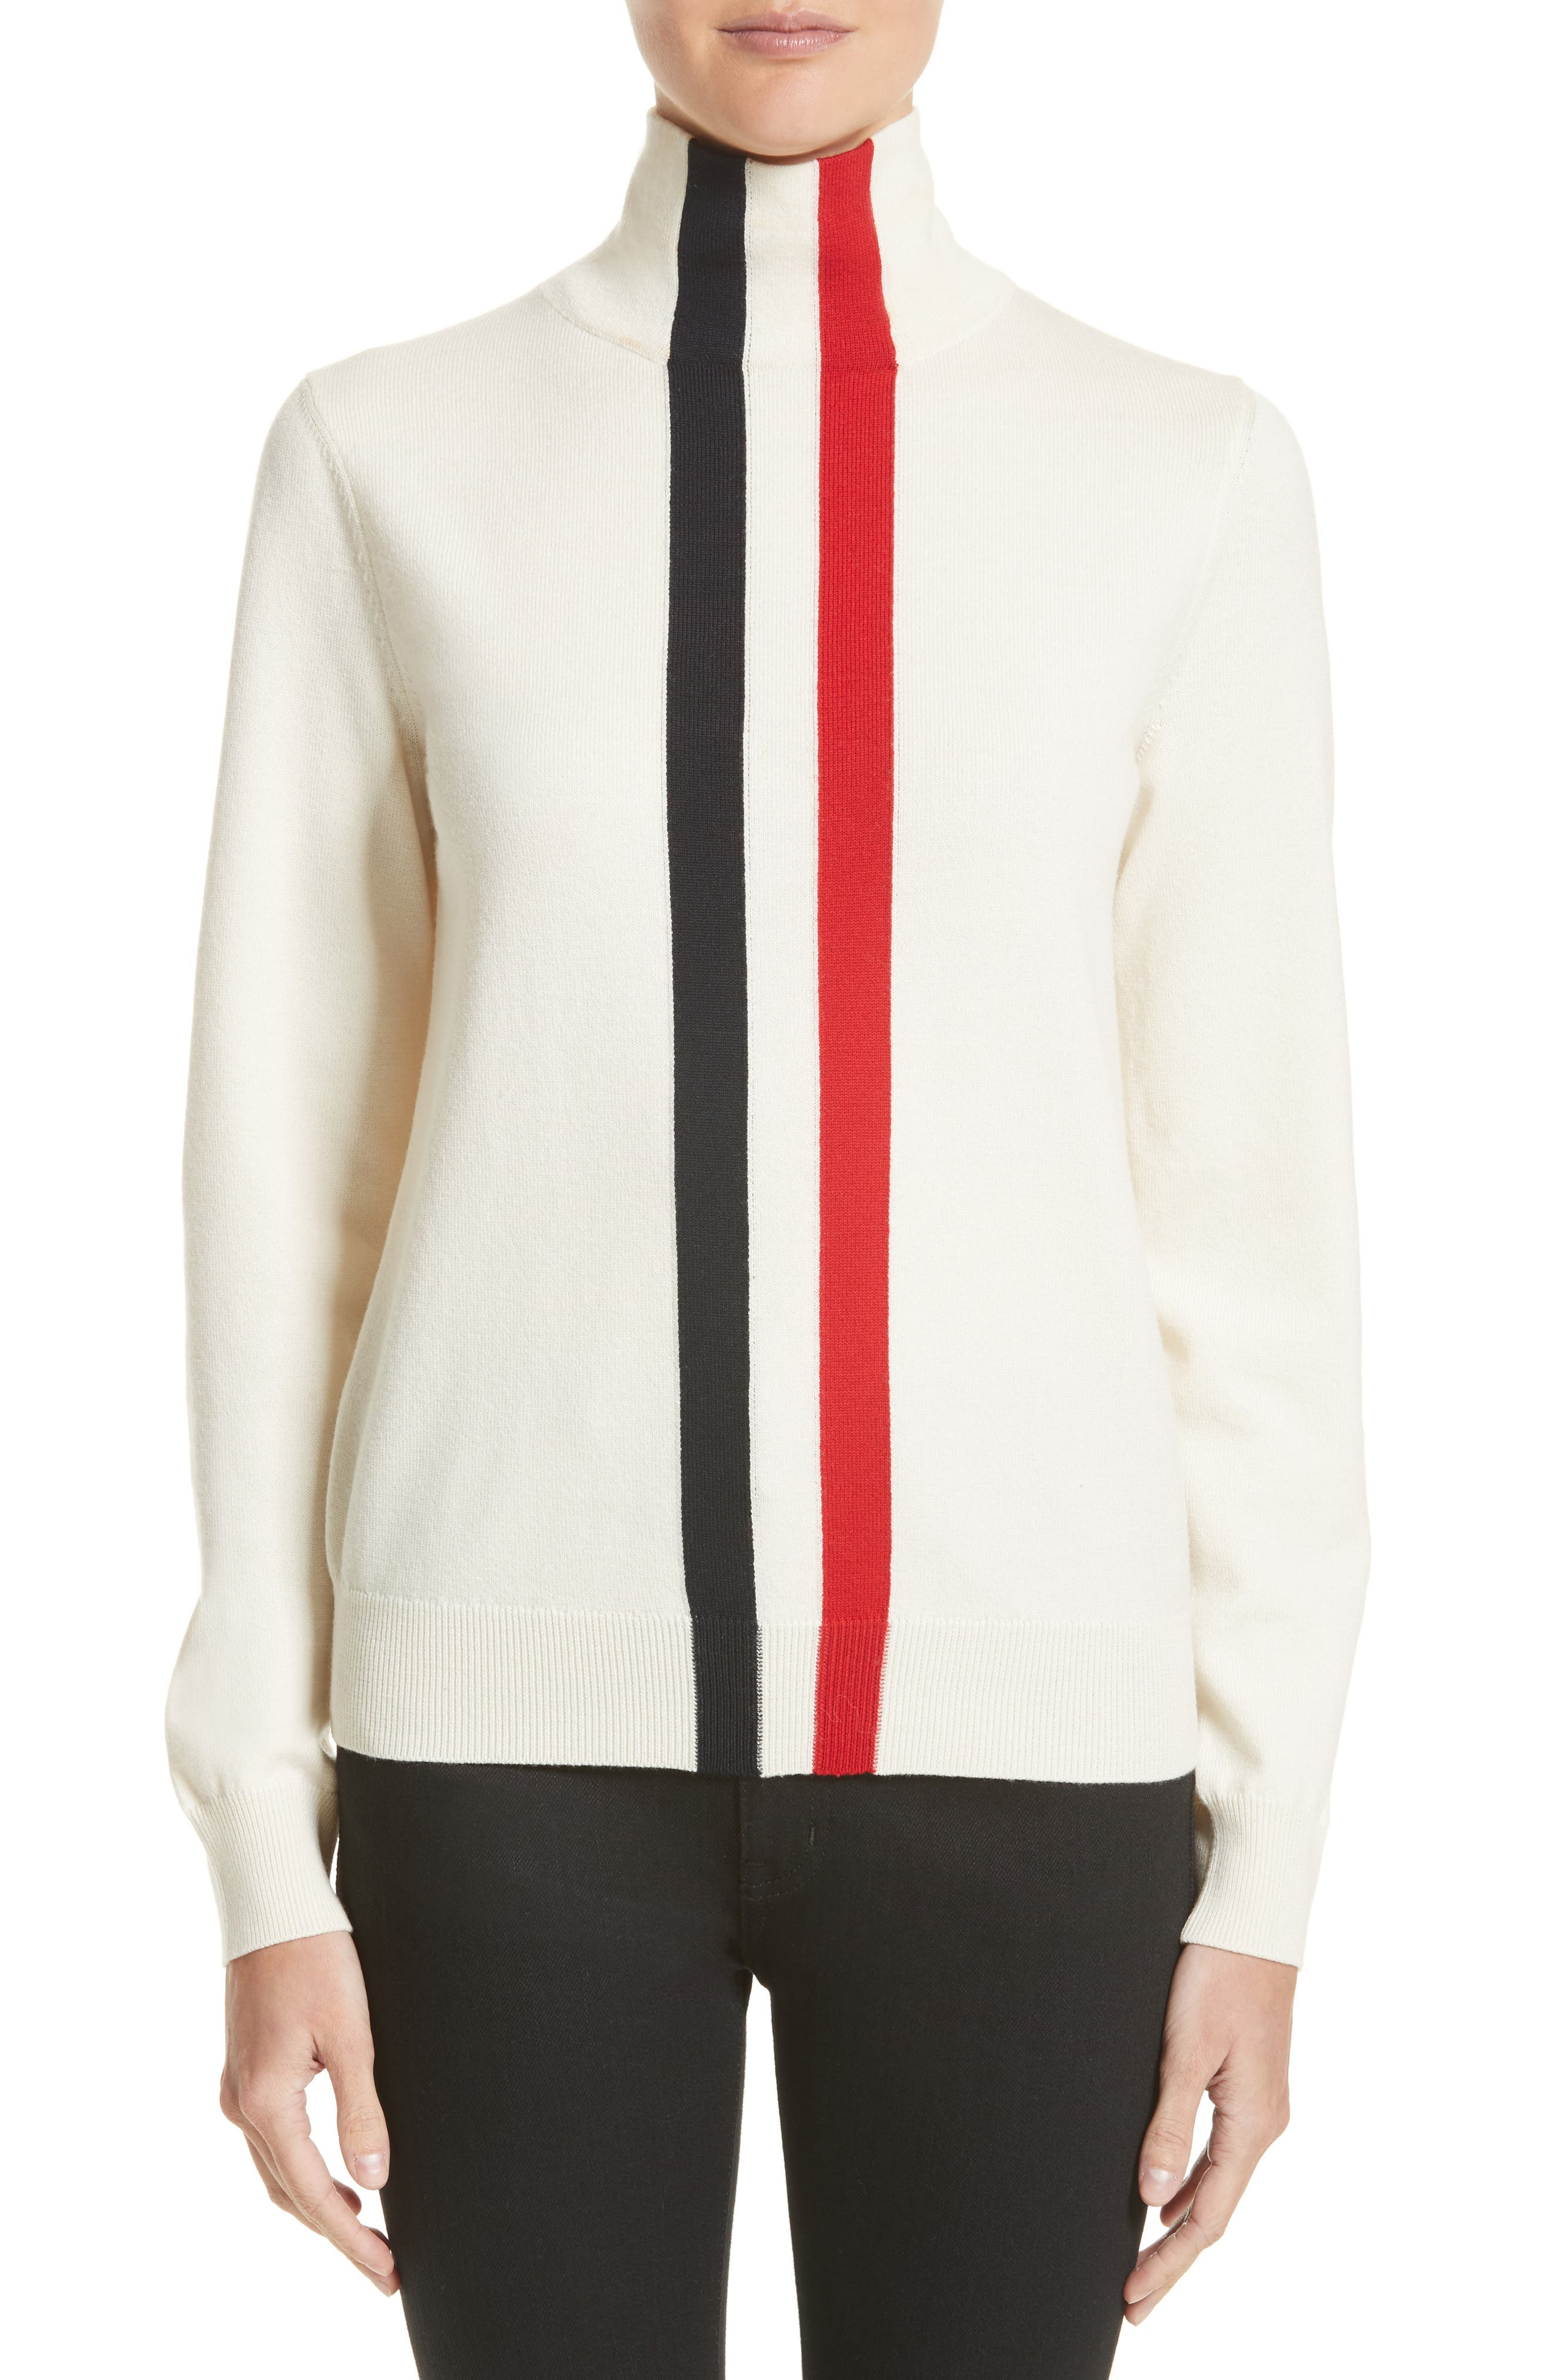 Main Image - Moncler Ciclista Tricot Knit Sweater